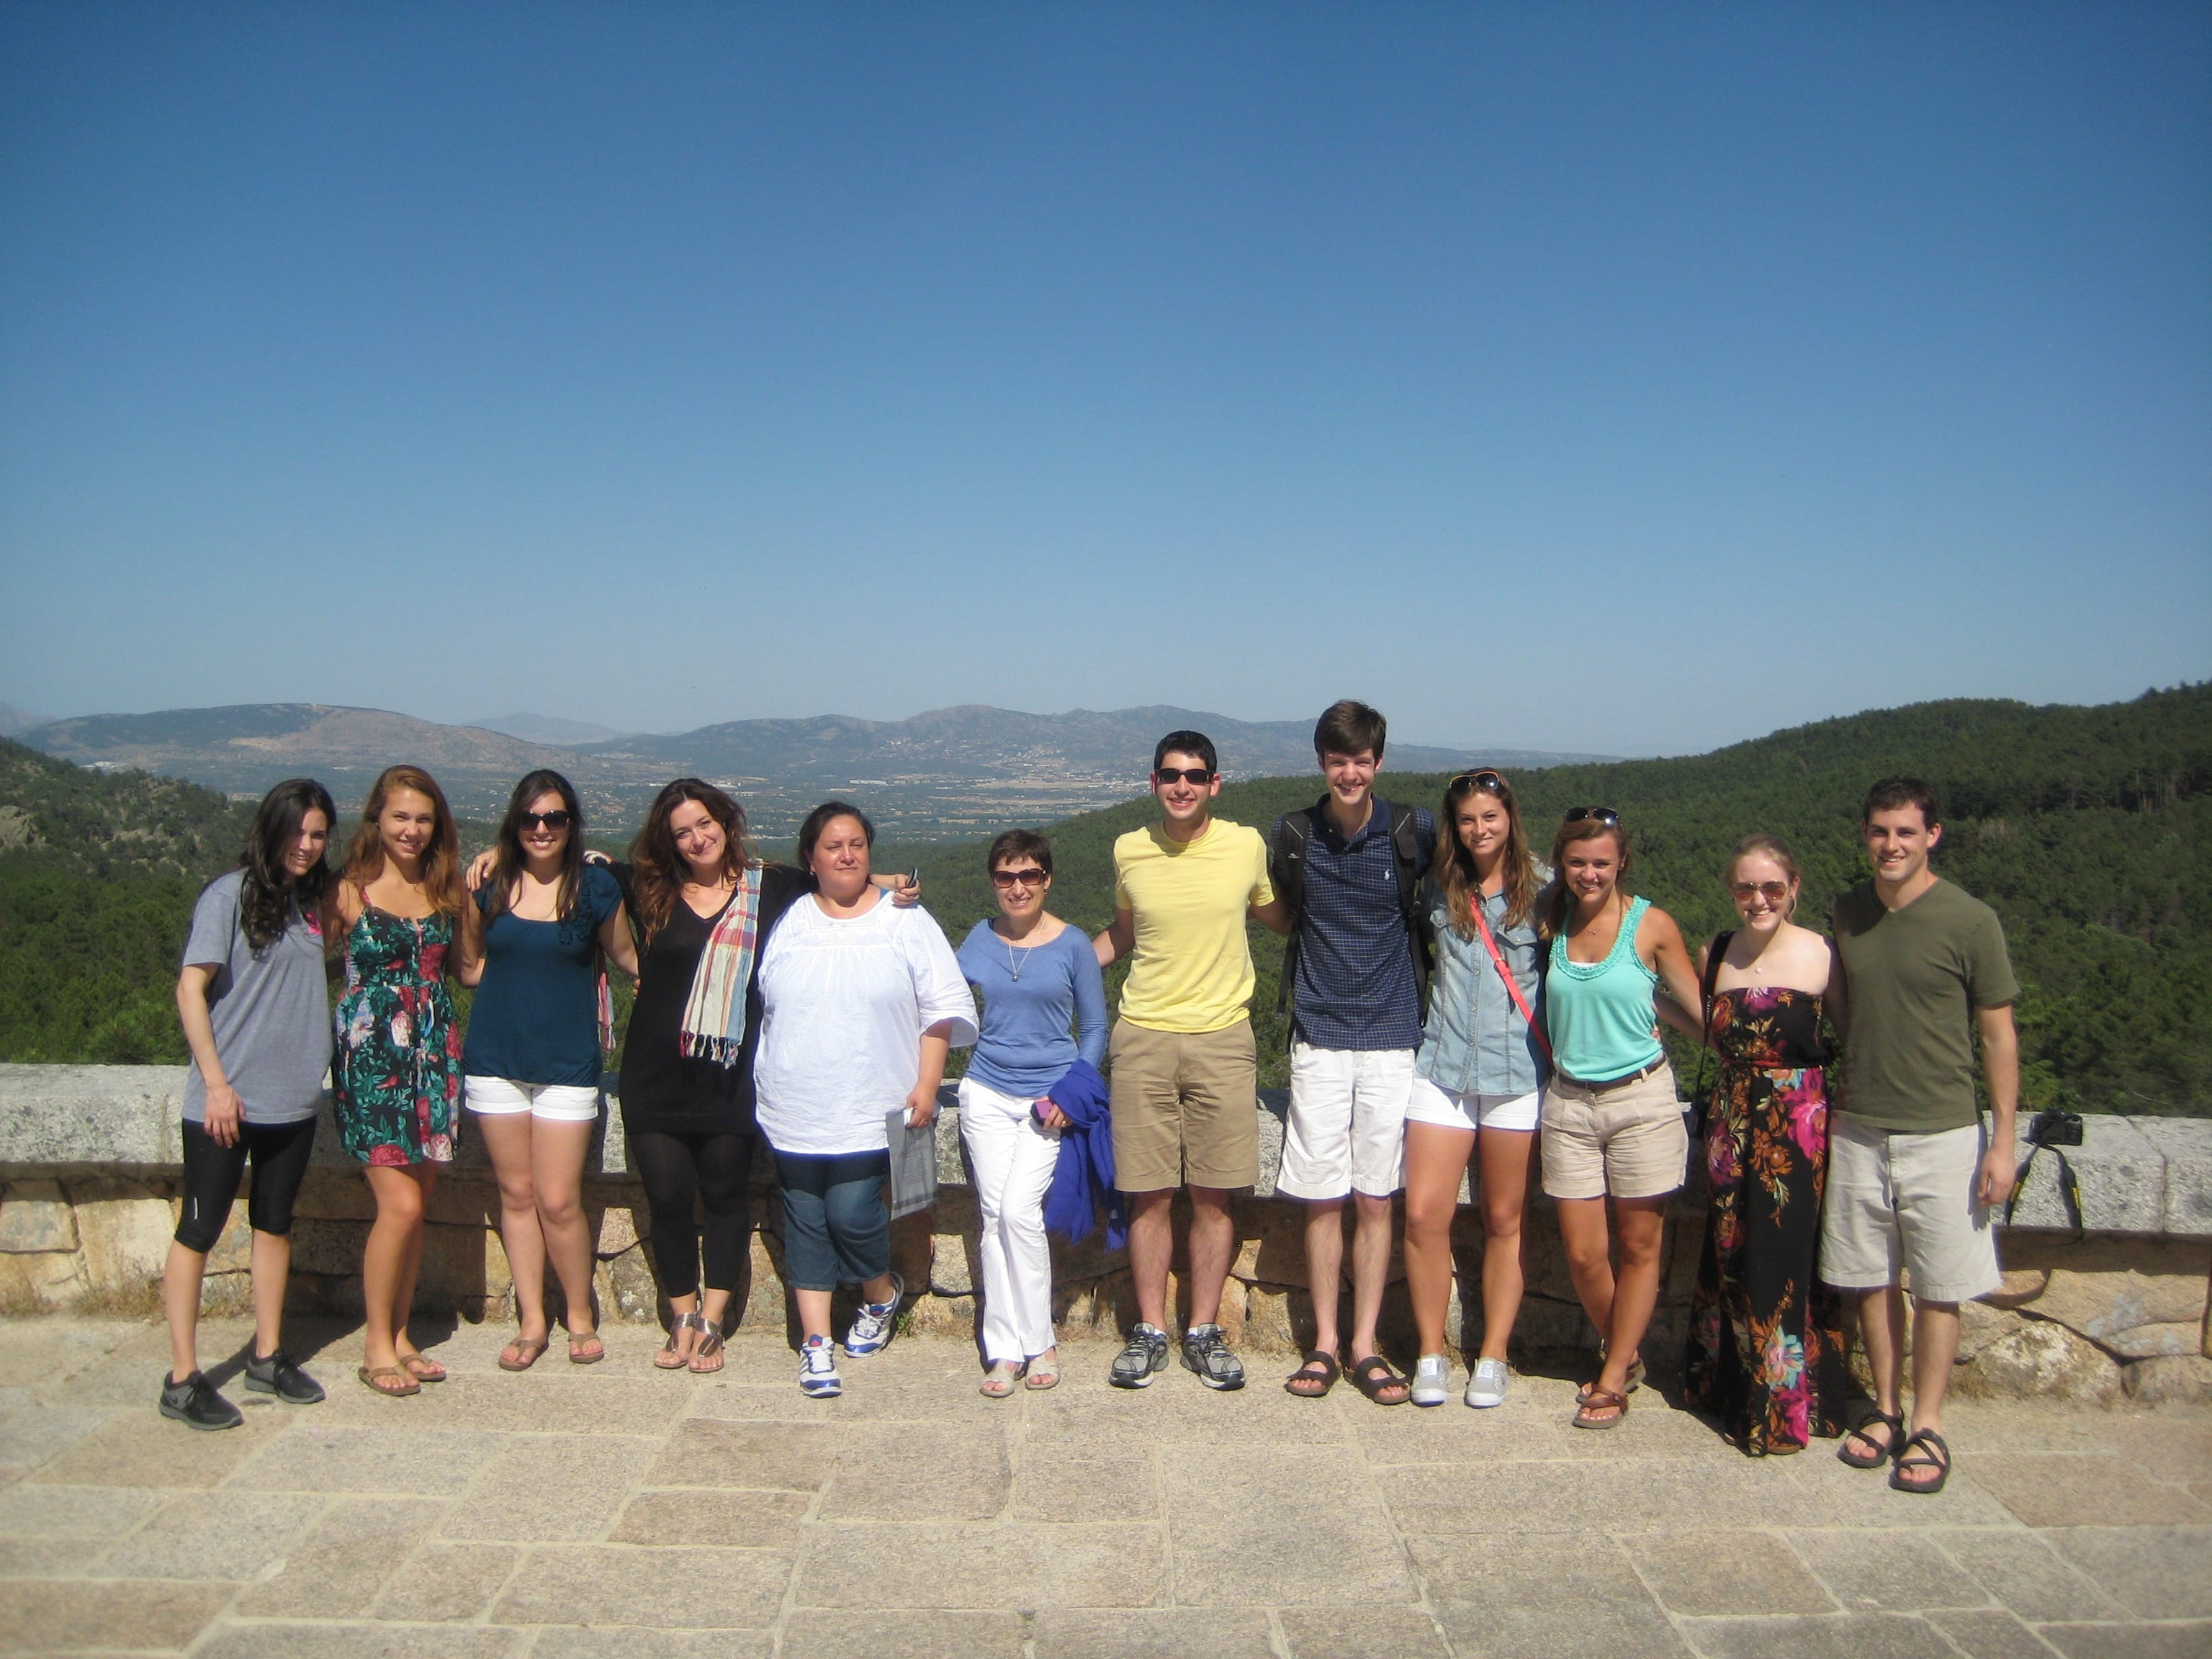 Mayra and her SMU group in Spain